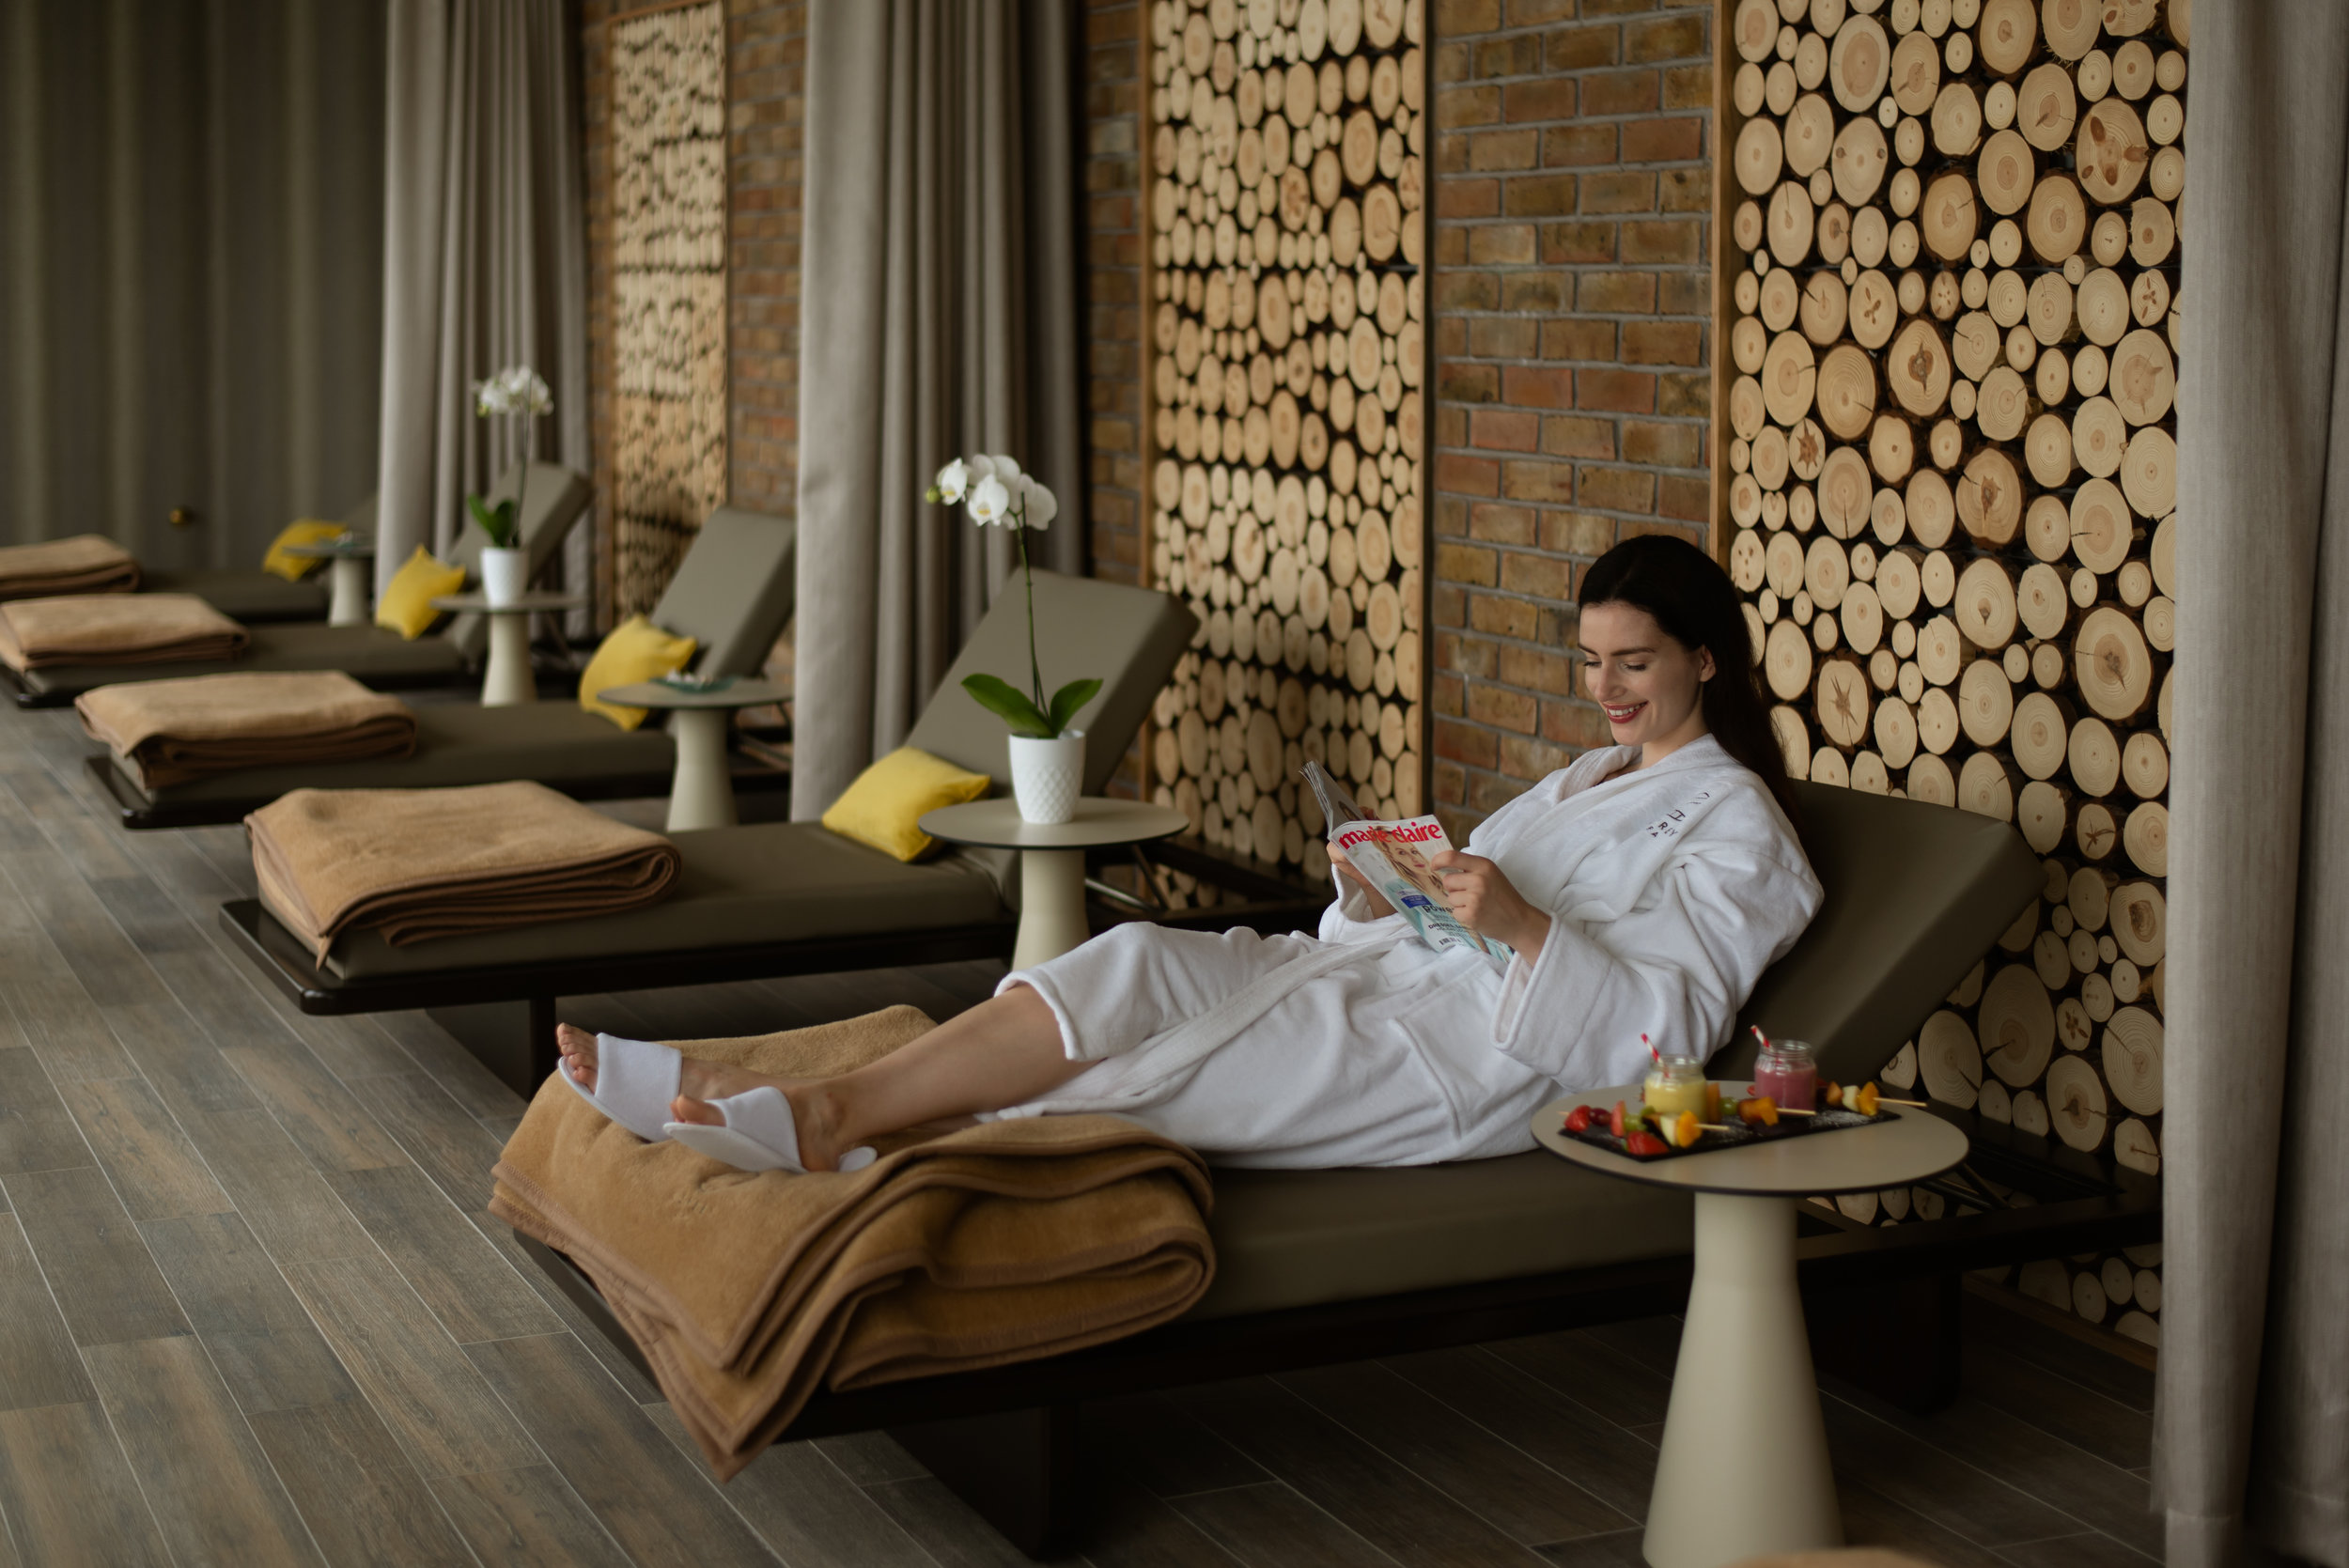 Win a Pamper Me & Afternoon Tea Package For 2 Worth €130